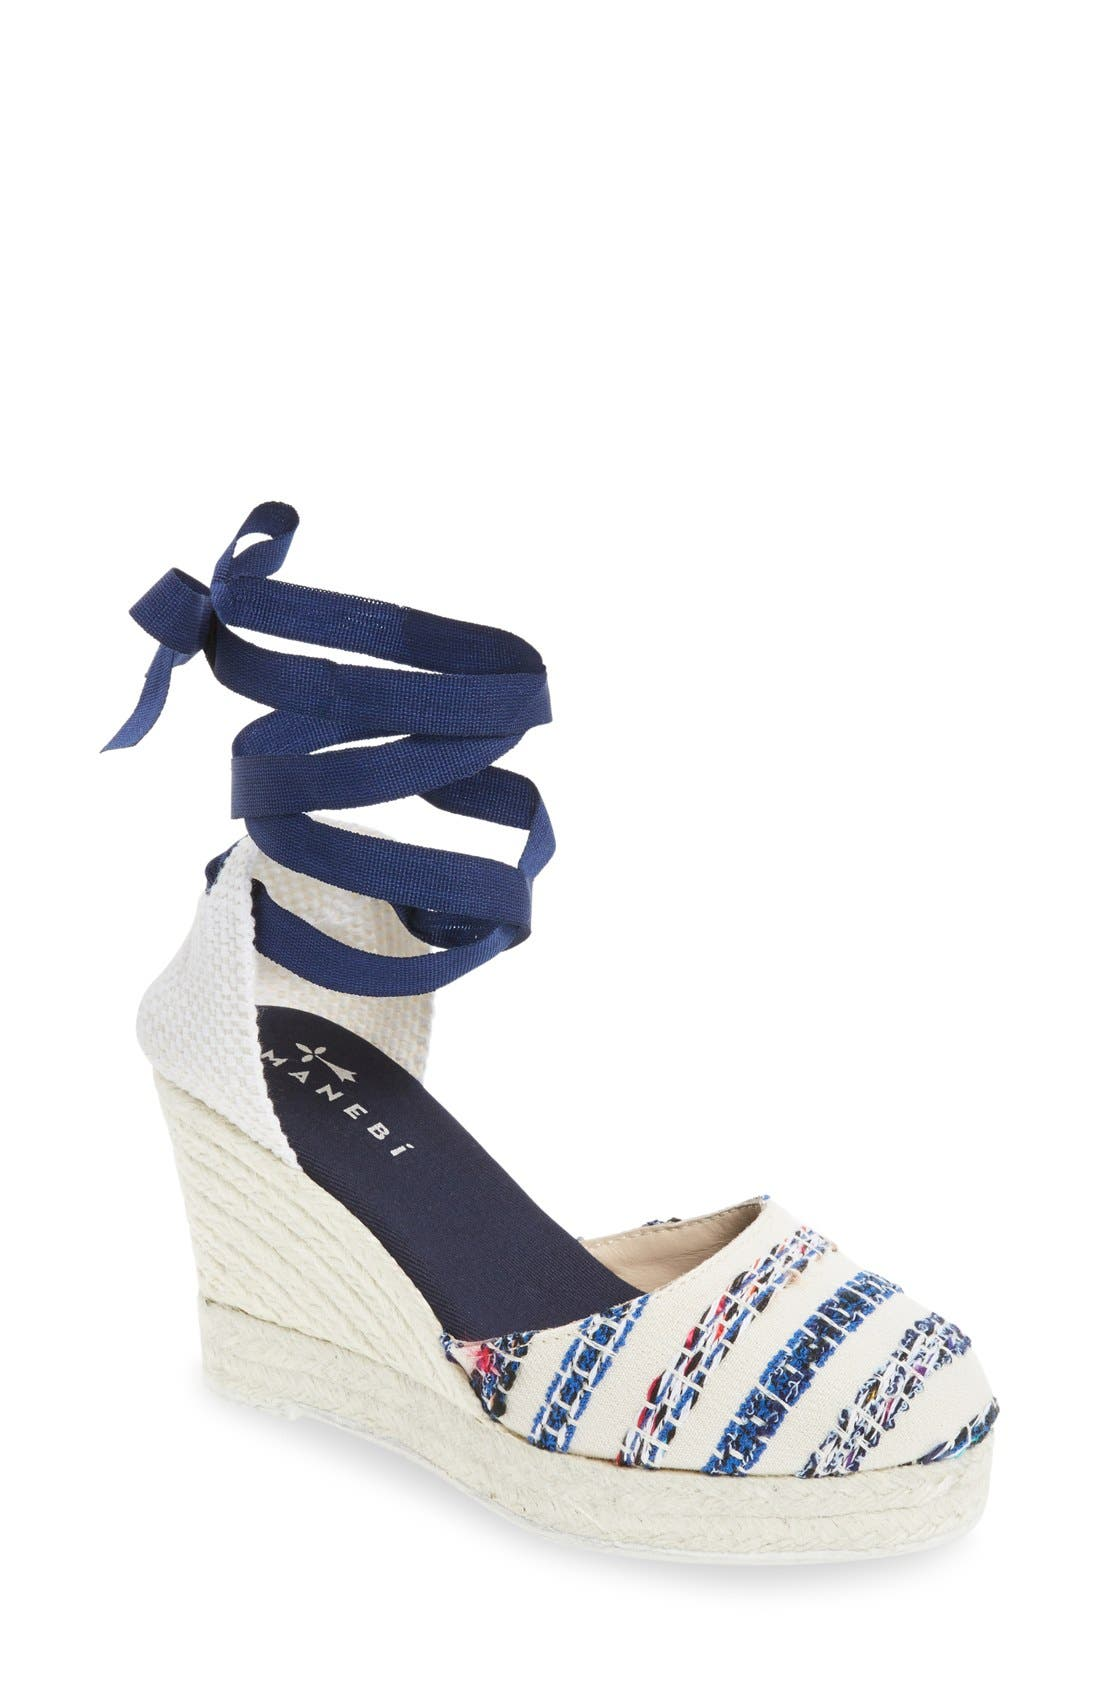 Alternate Image 1 Selected - MANEBÍ 'Ibiza' Espadrille Wedge Sandal (Women)